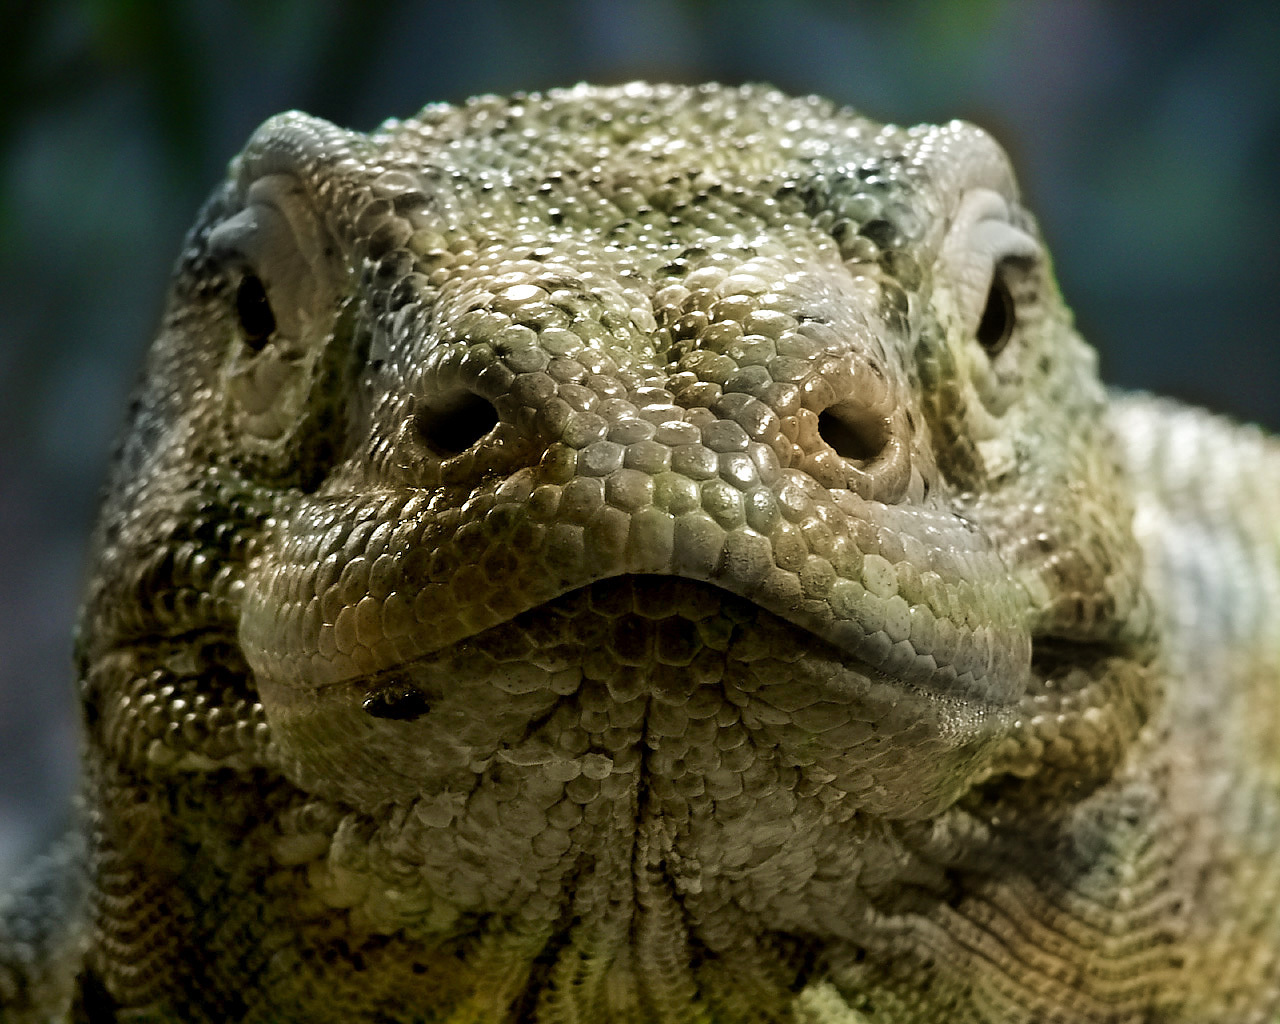 Reptiles Images Reptiles Hd Wallpaper And Background